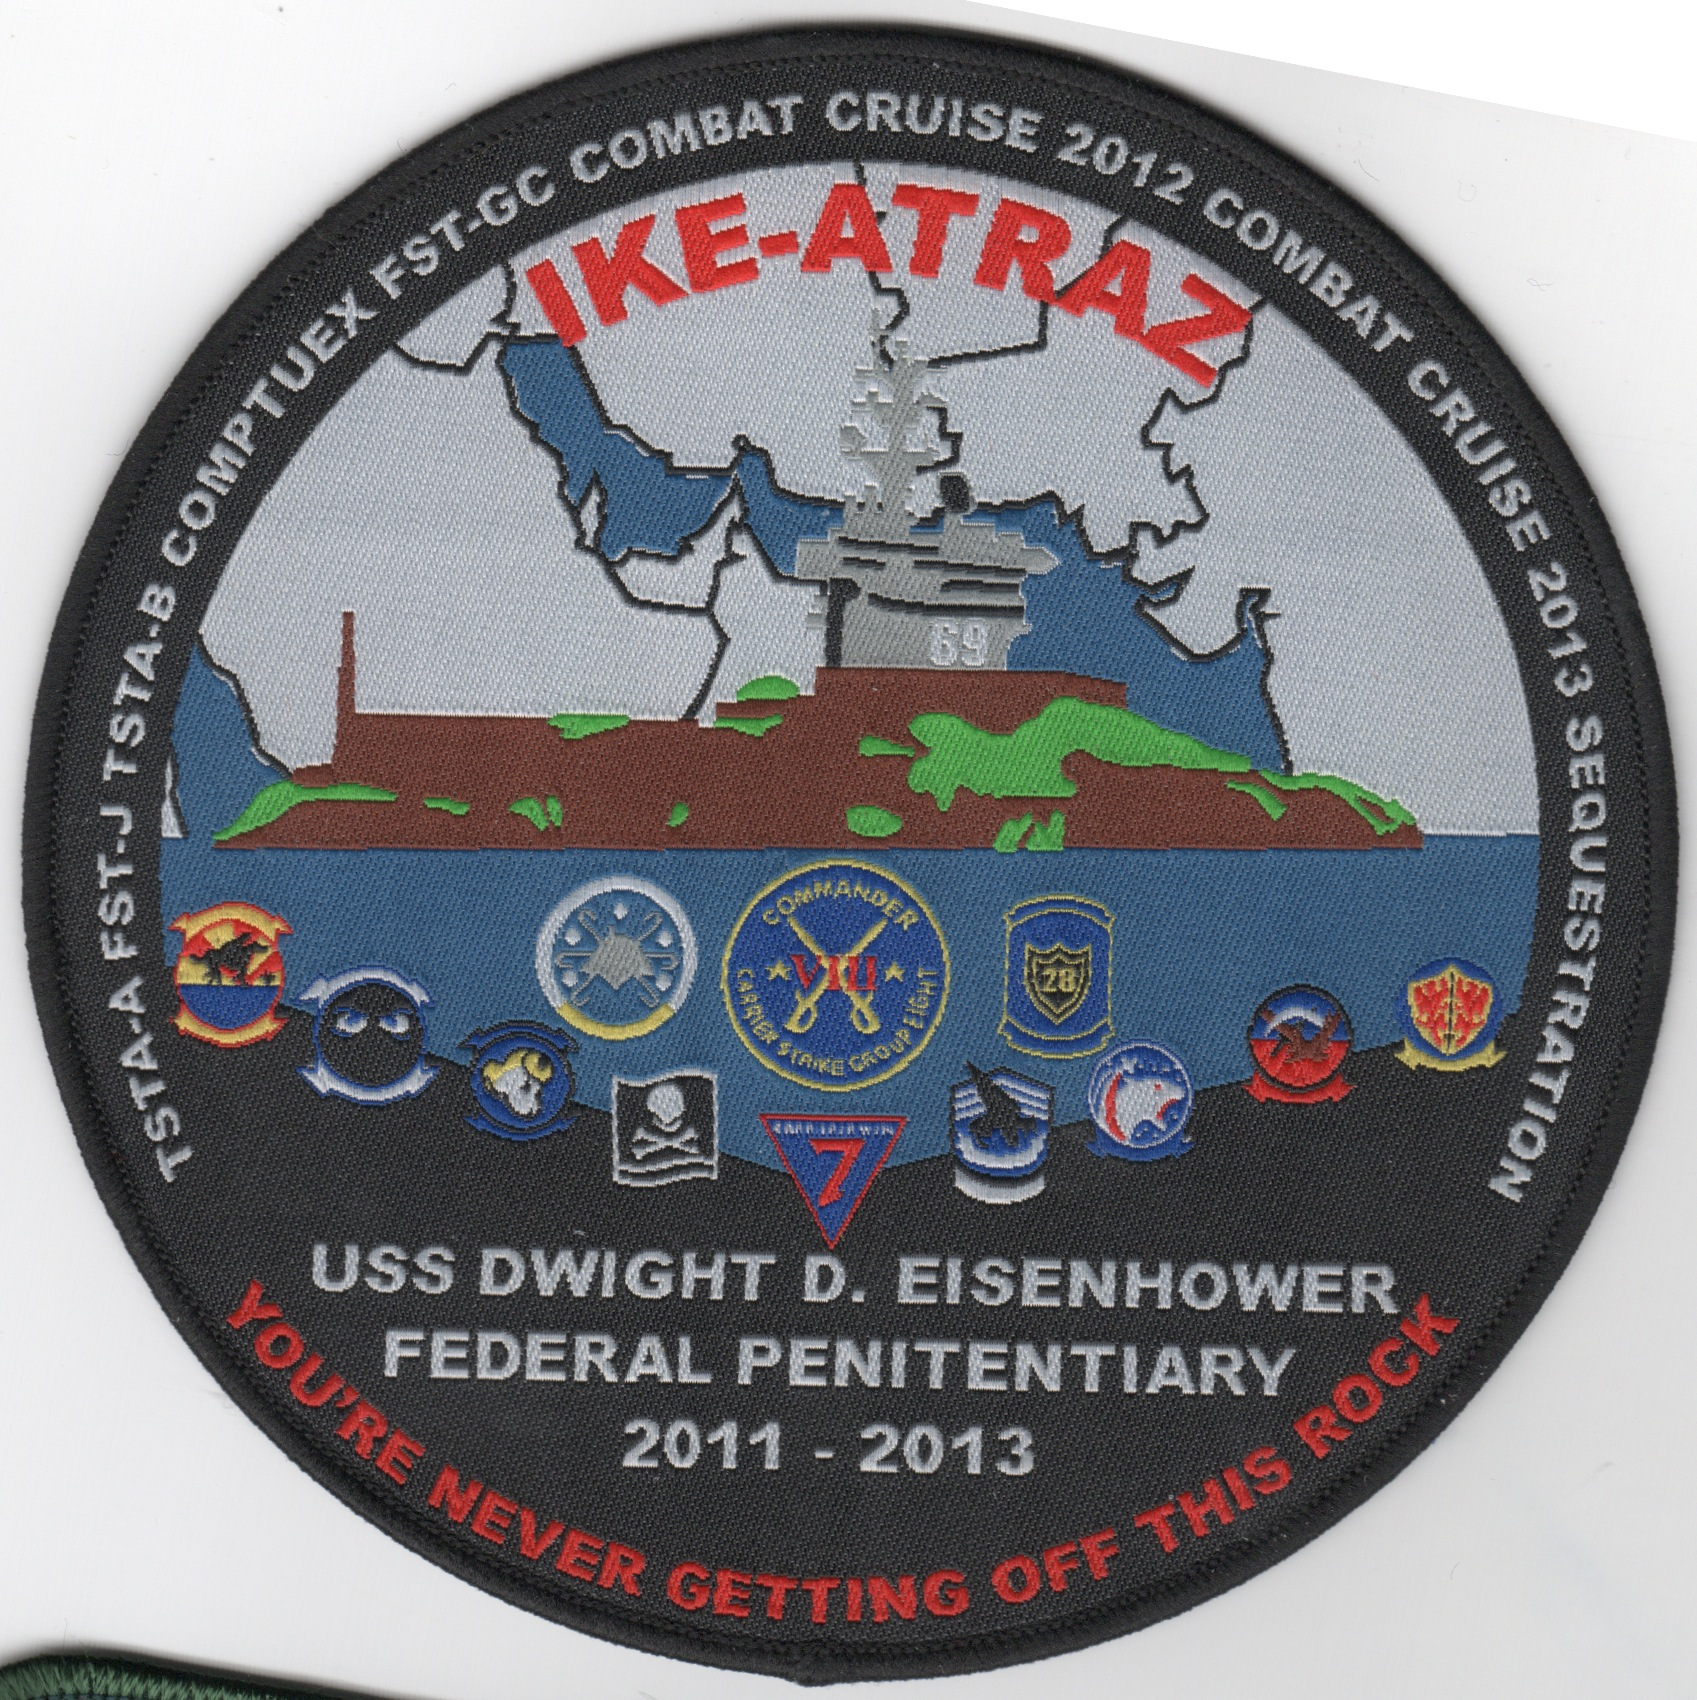 CVN-69/VFA-143/CVW-7 2011-2013 'IKE-ATRAZ' Cruise Patch